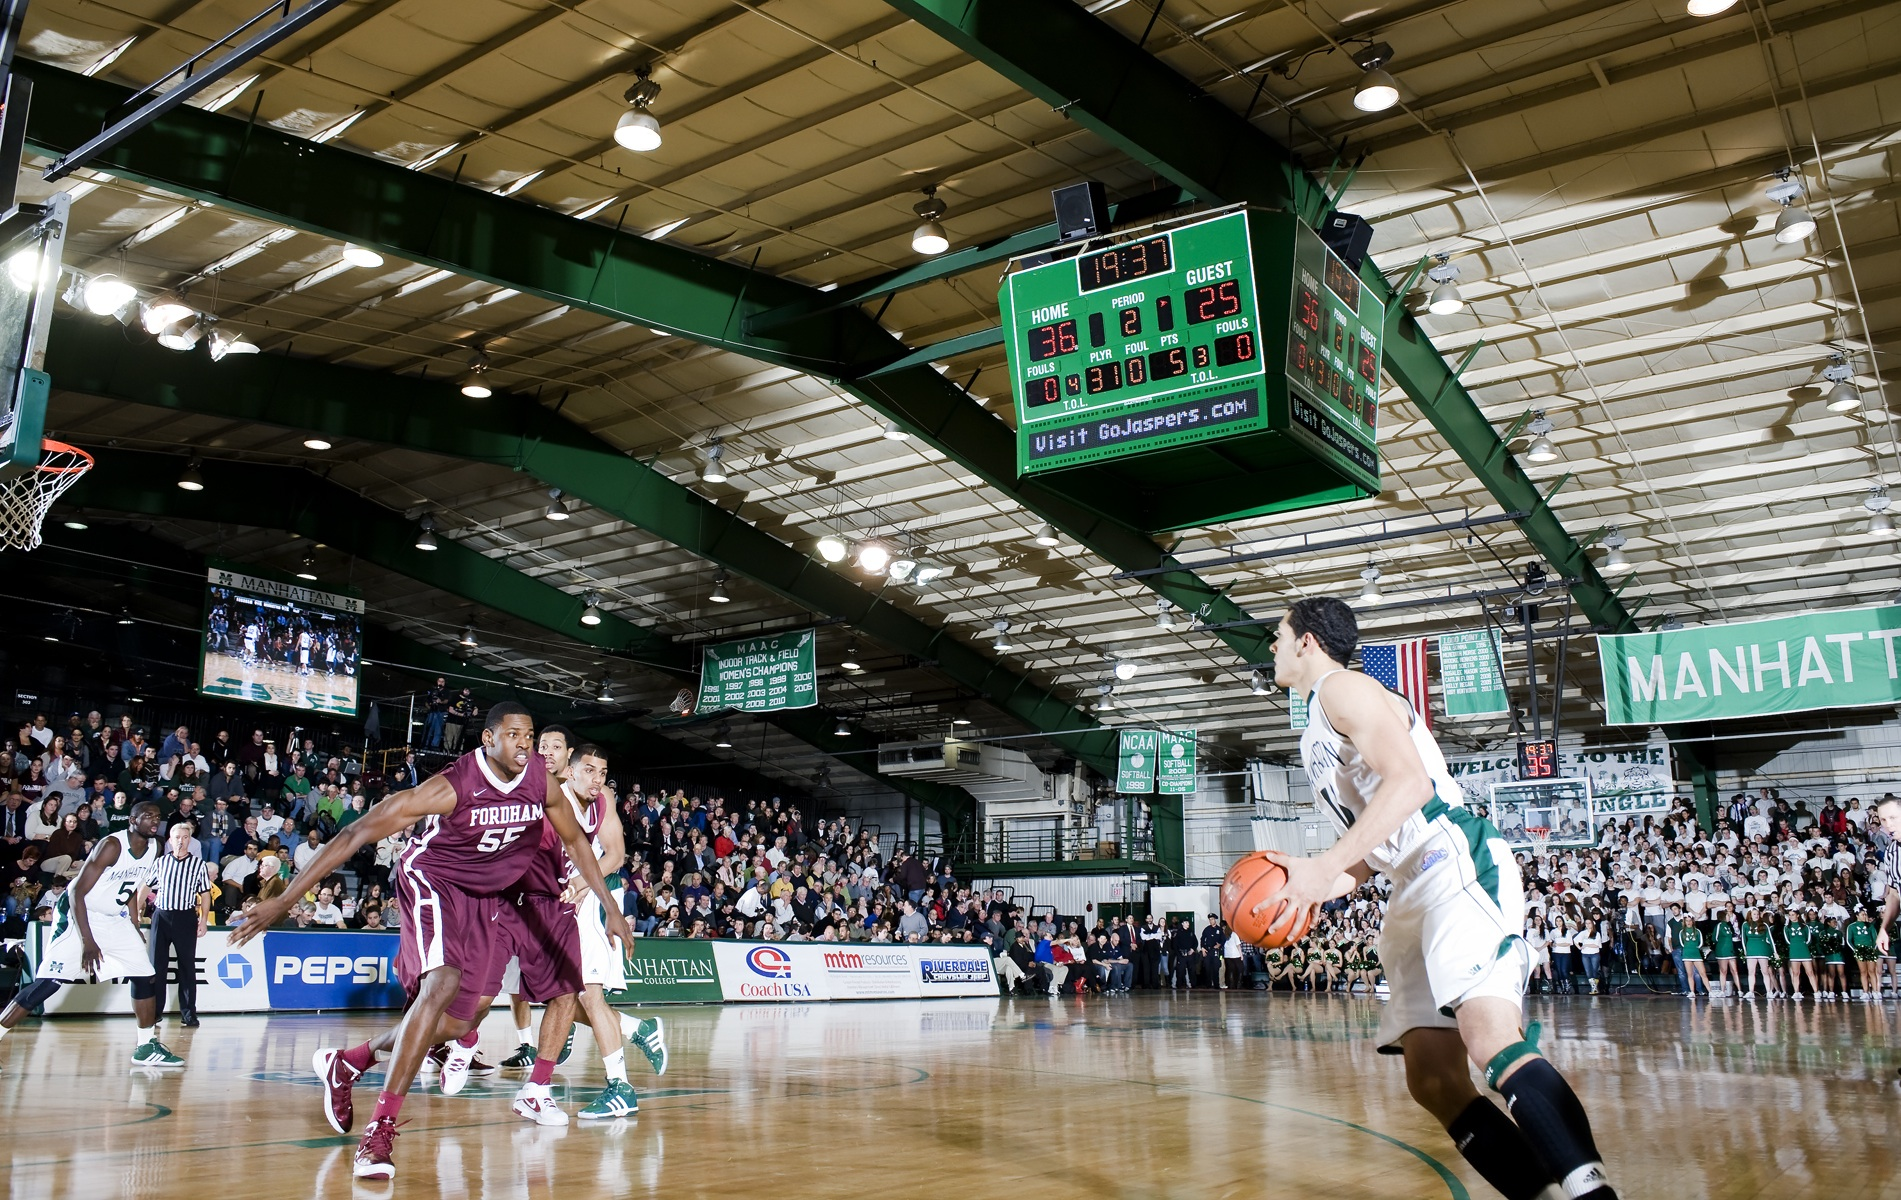 File:Manhattan College Basketball.jpg - Wikimedia Commons